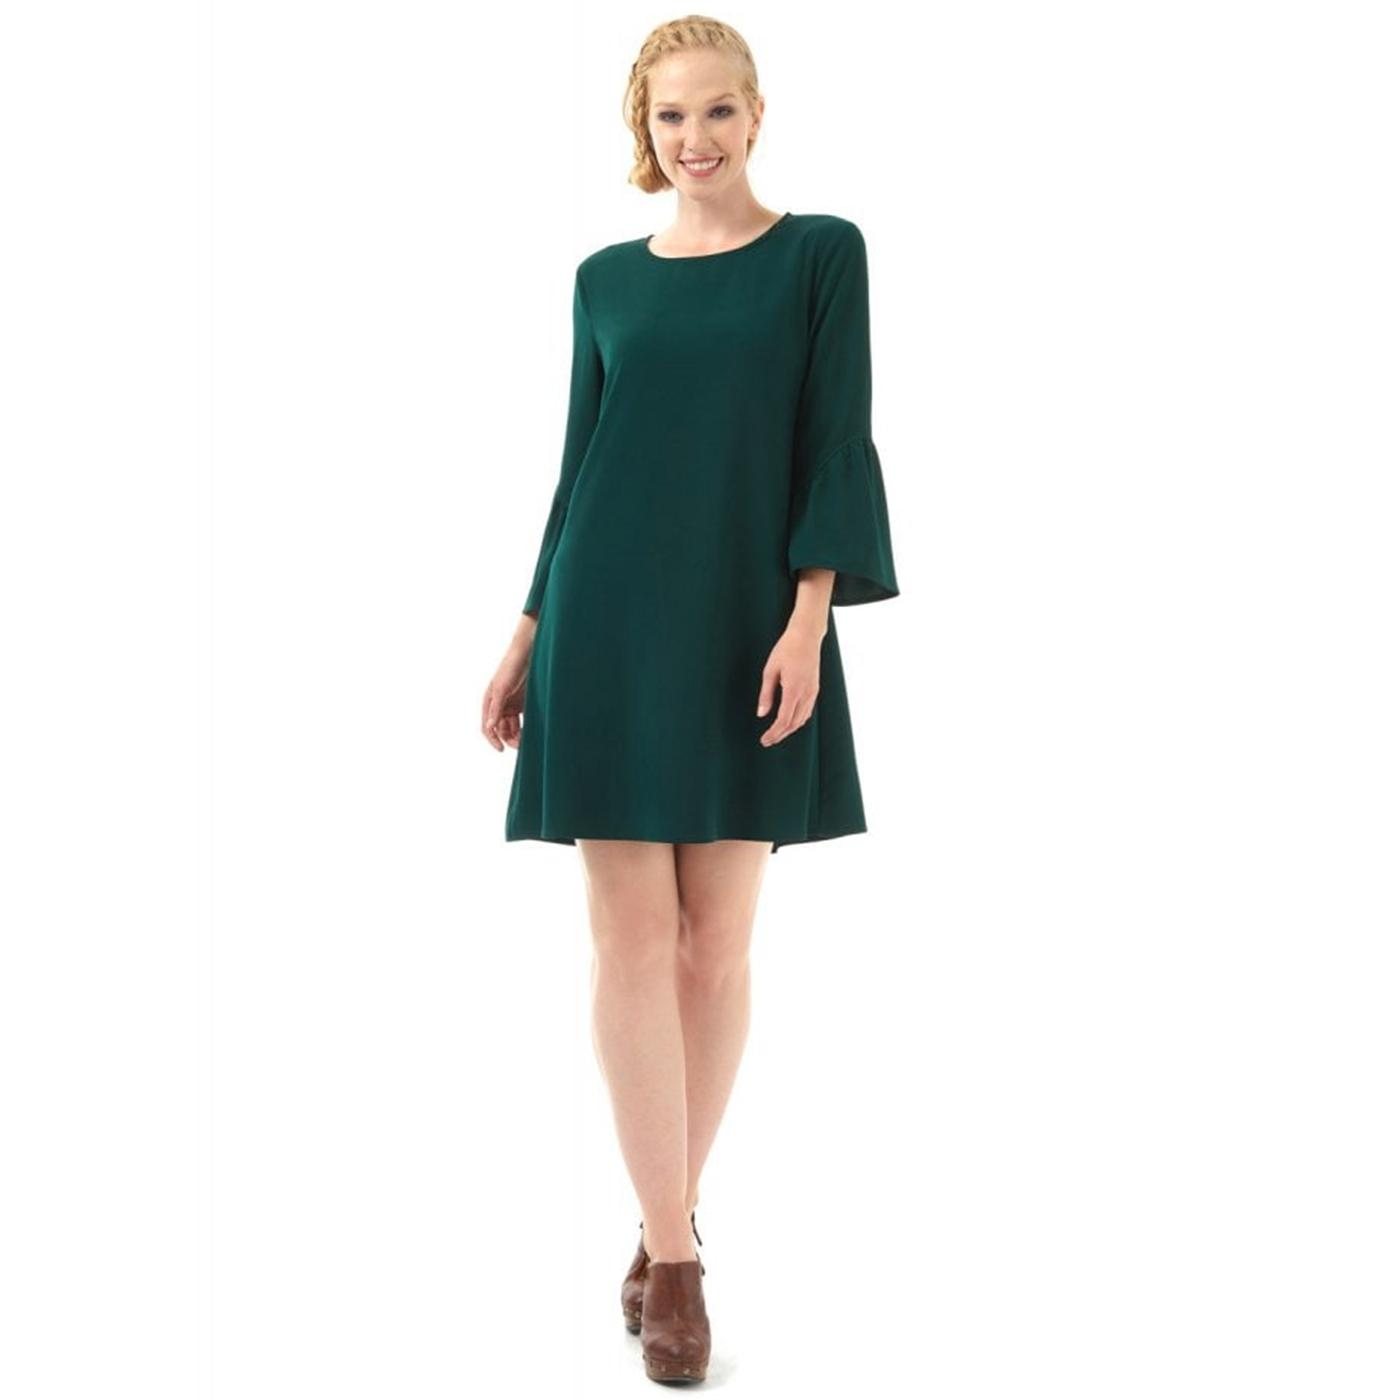 Greta BRIGHT & BEAUTIFUL Retro Plain Dress Green